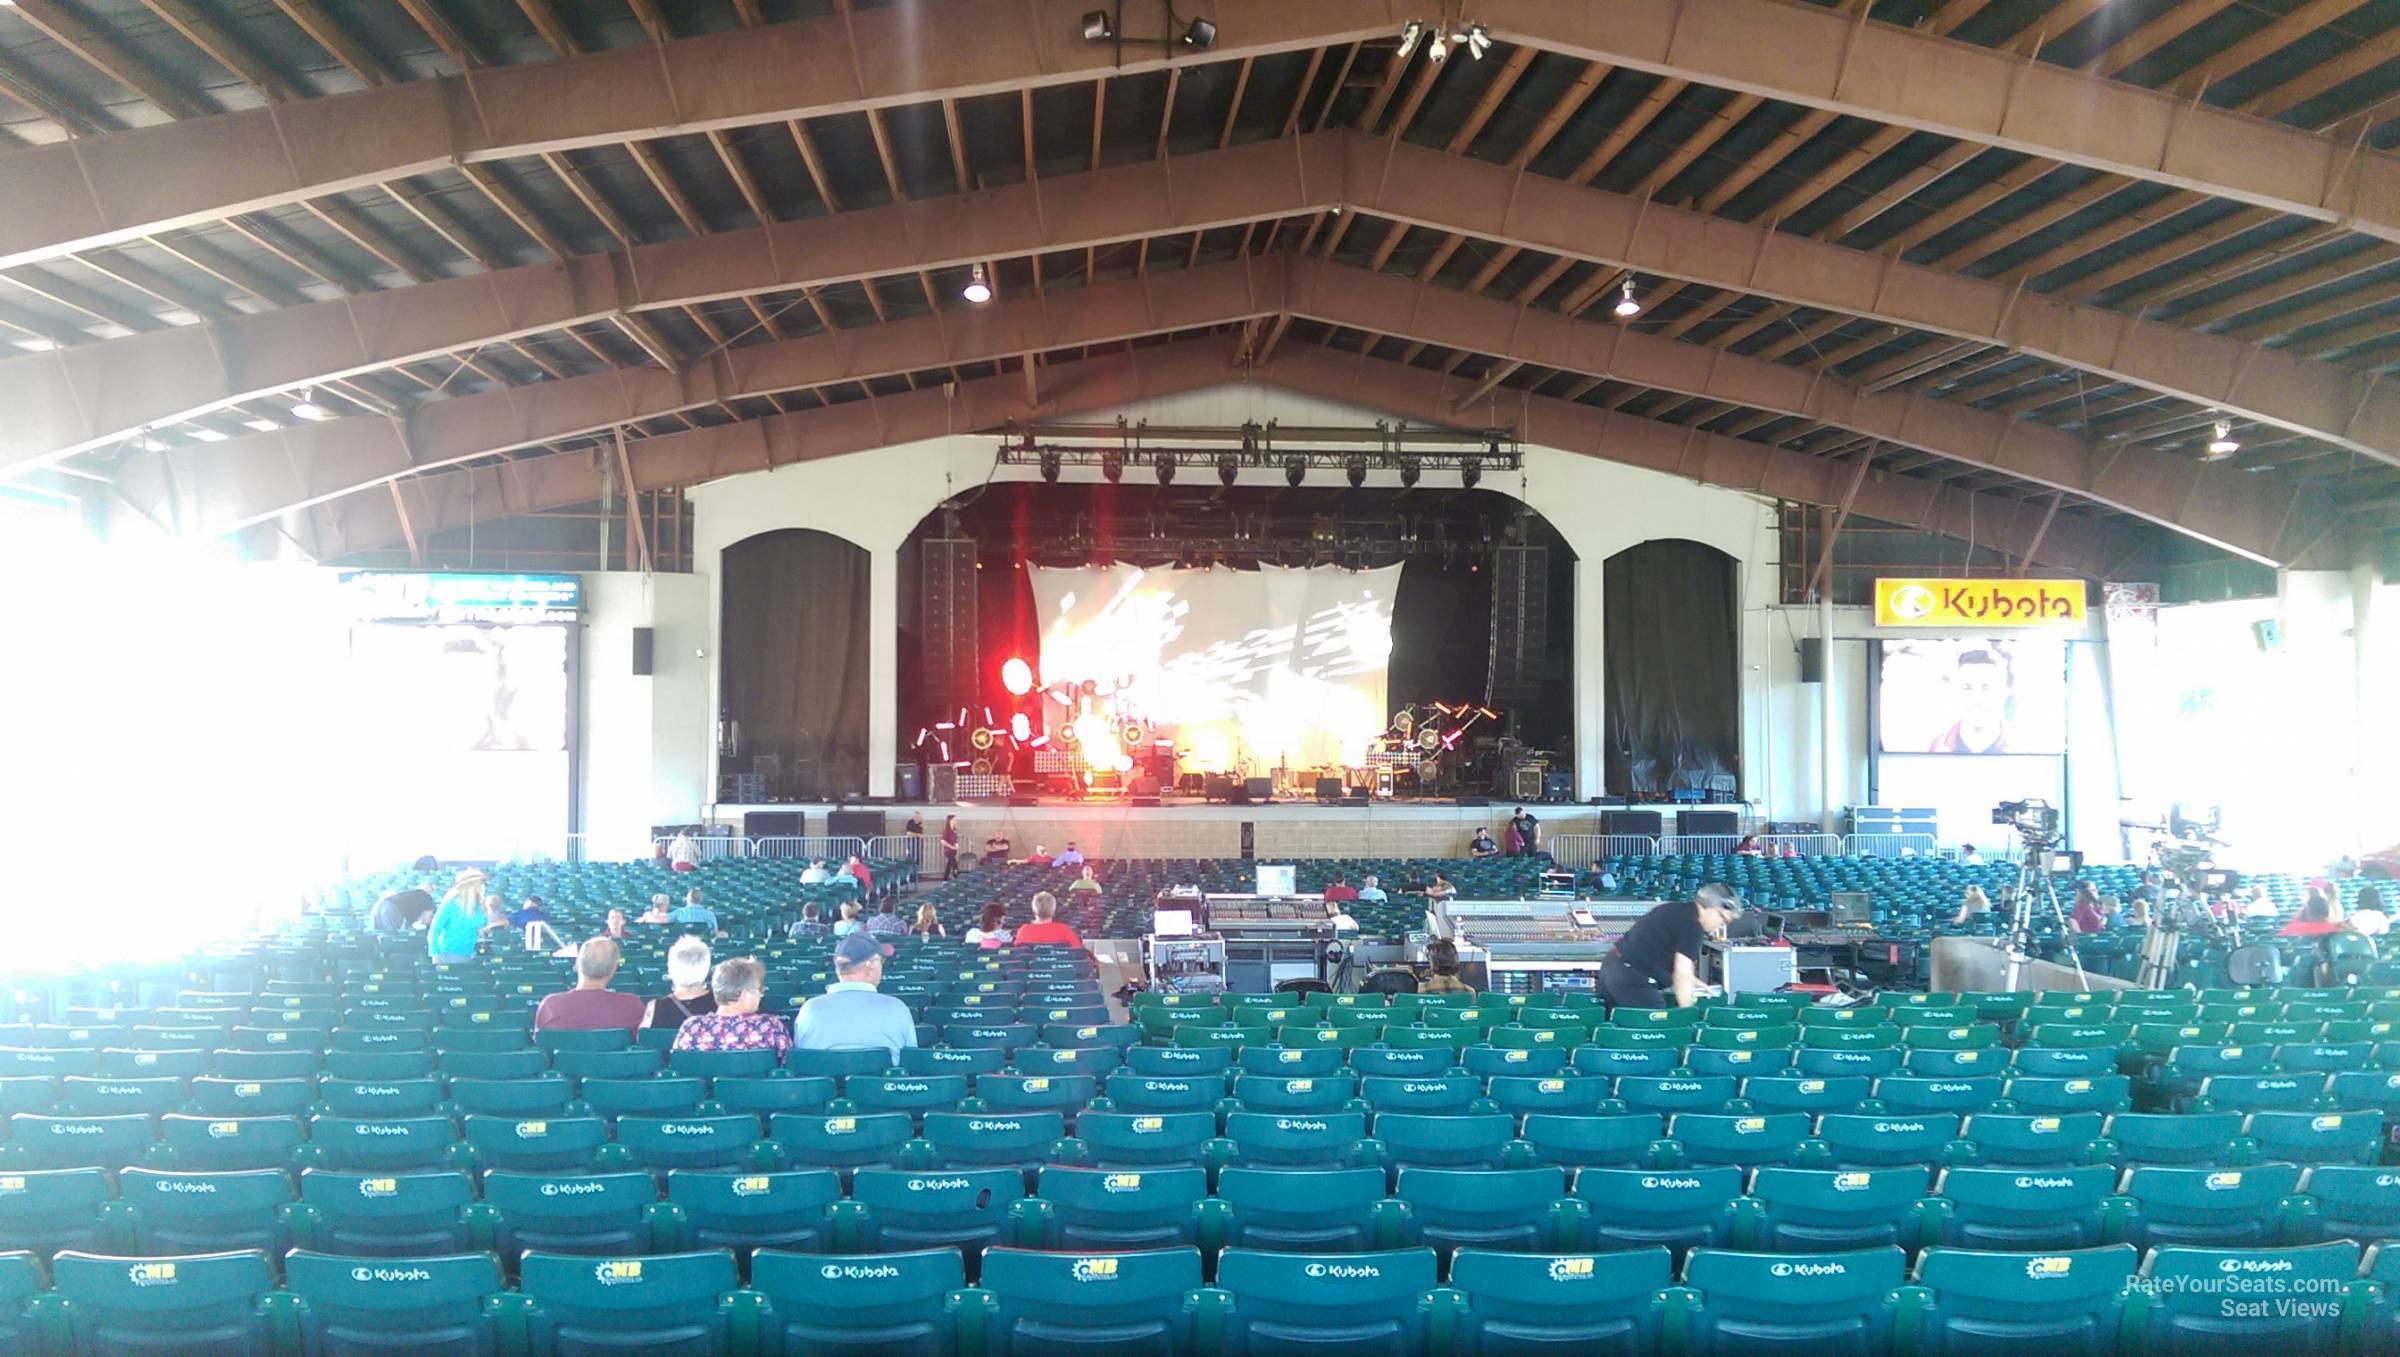 Concert Seat View For Bank Of New Hampshire Pavilion Meadowbrook Section 2b